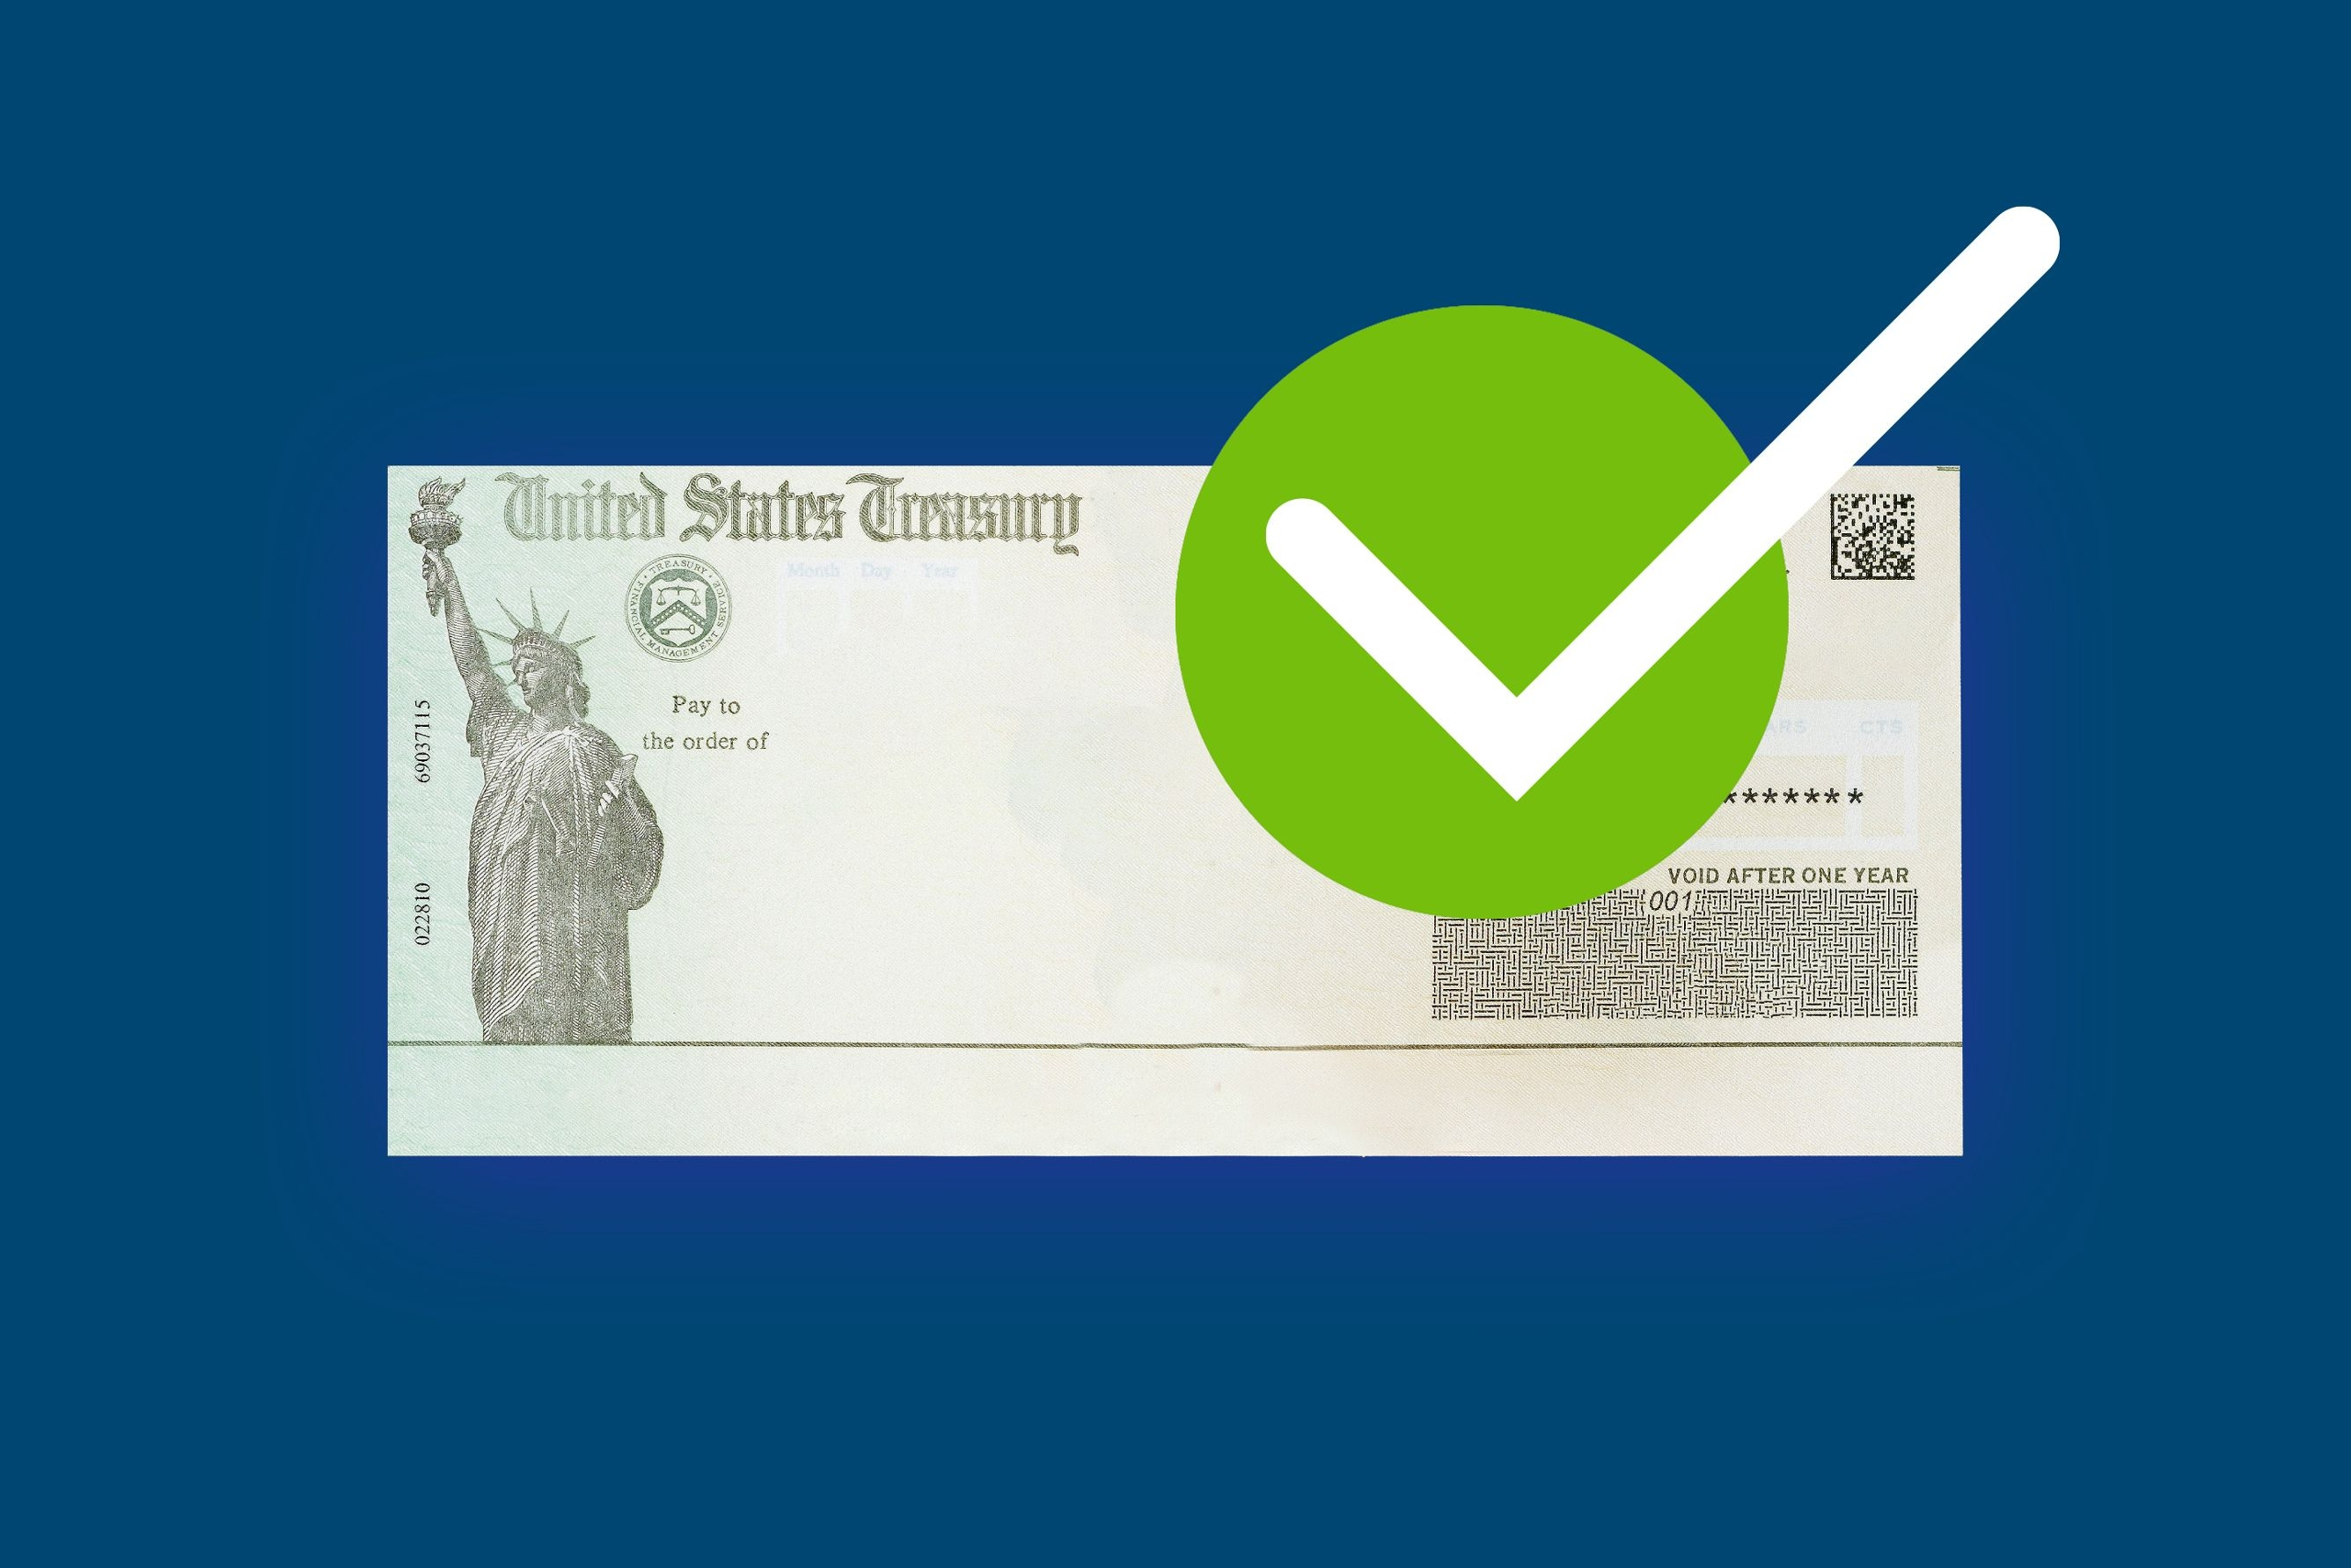 Get My Payment: Irs Portal For Stimulus Check Direct Deposit